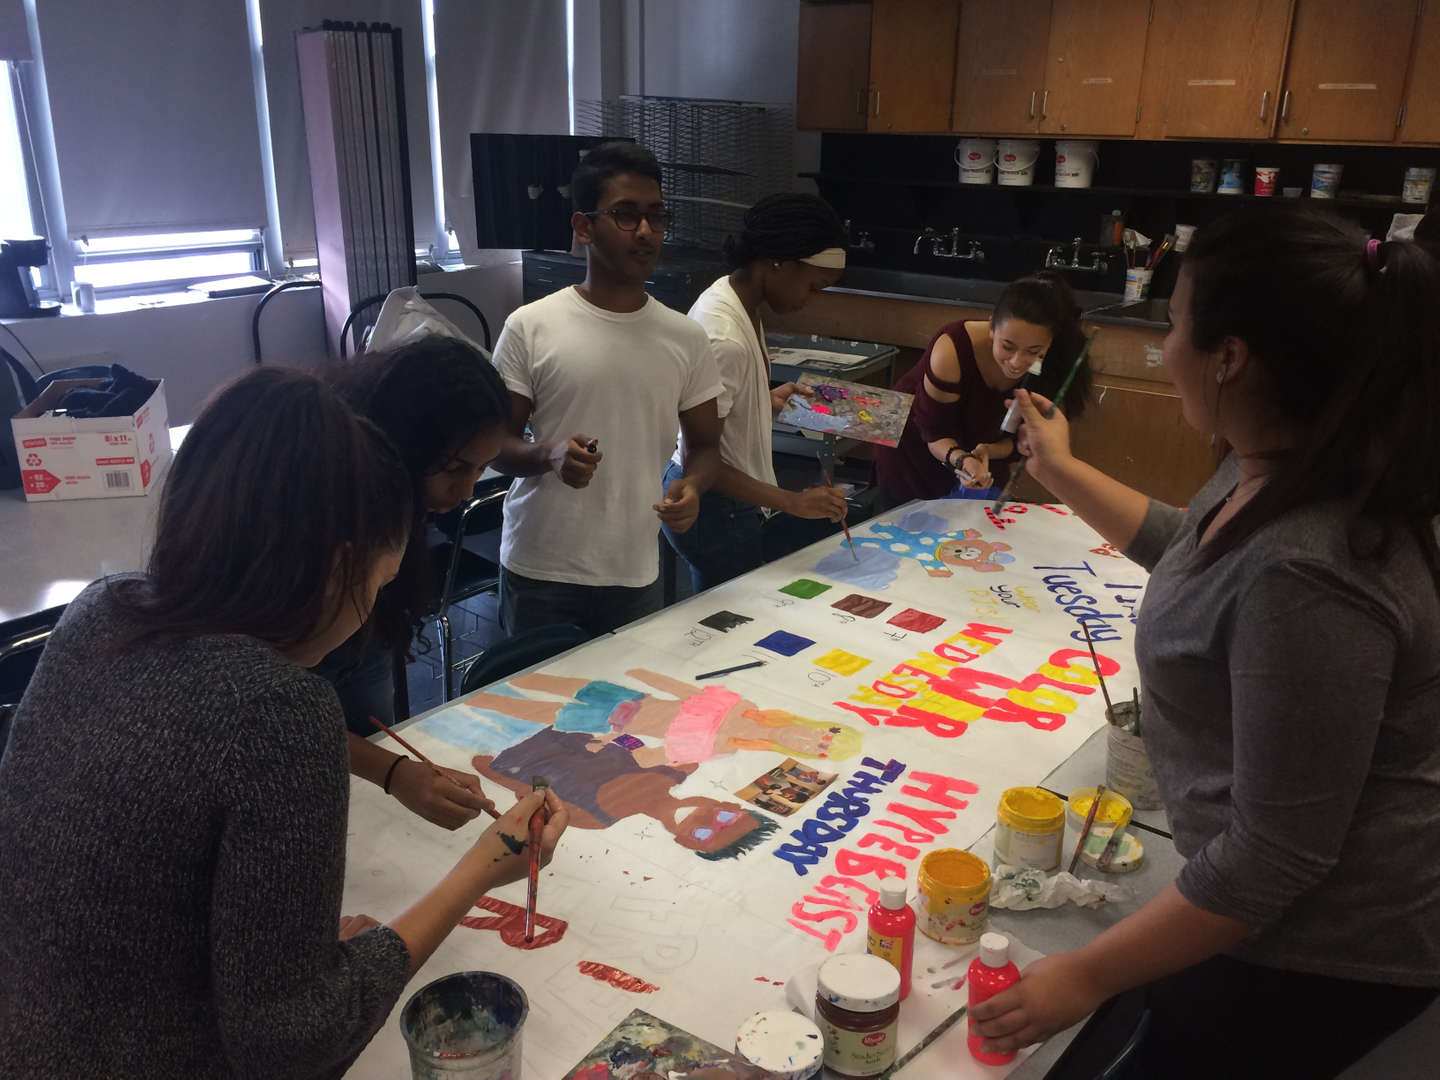 Students painting a sign together